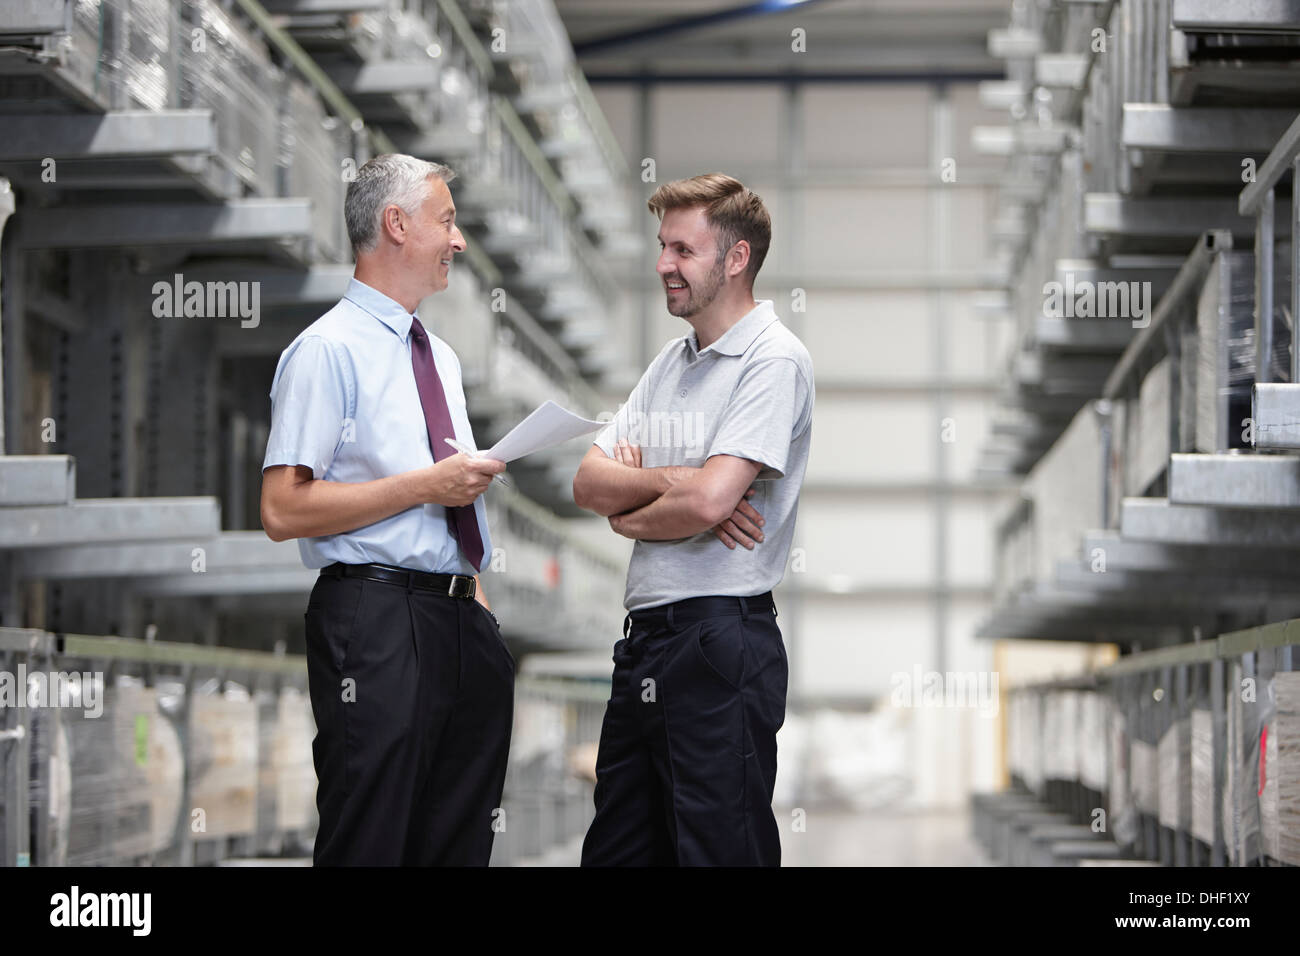 Worker and manager checking orders in engineering warehouse - Stock Image